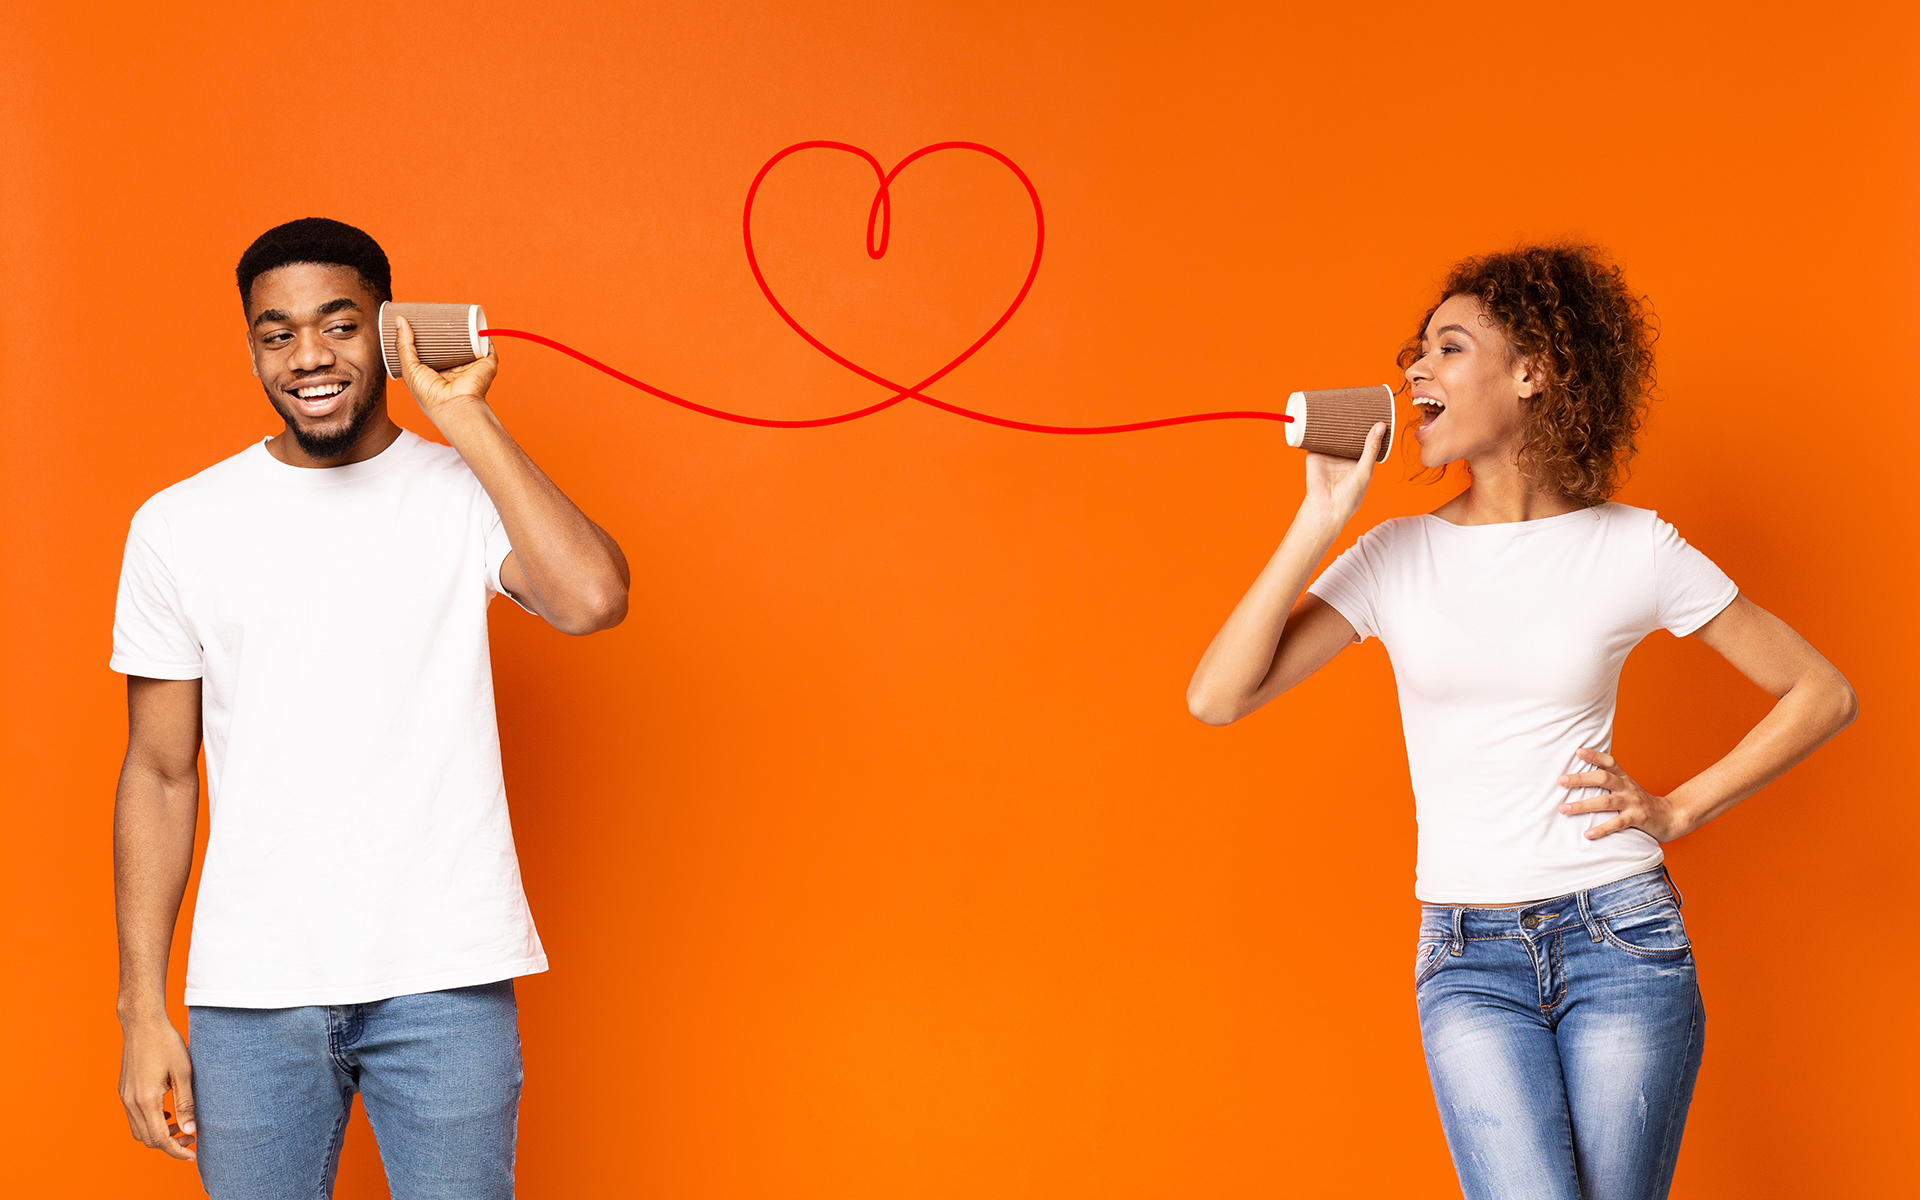 What Does Connection Mean to You? - Smiling man listening to his girlfriend through can phone, orange studio background